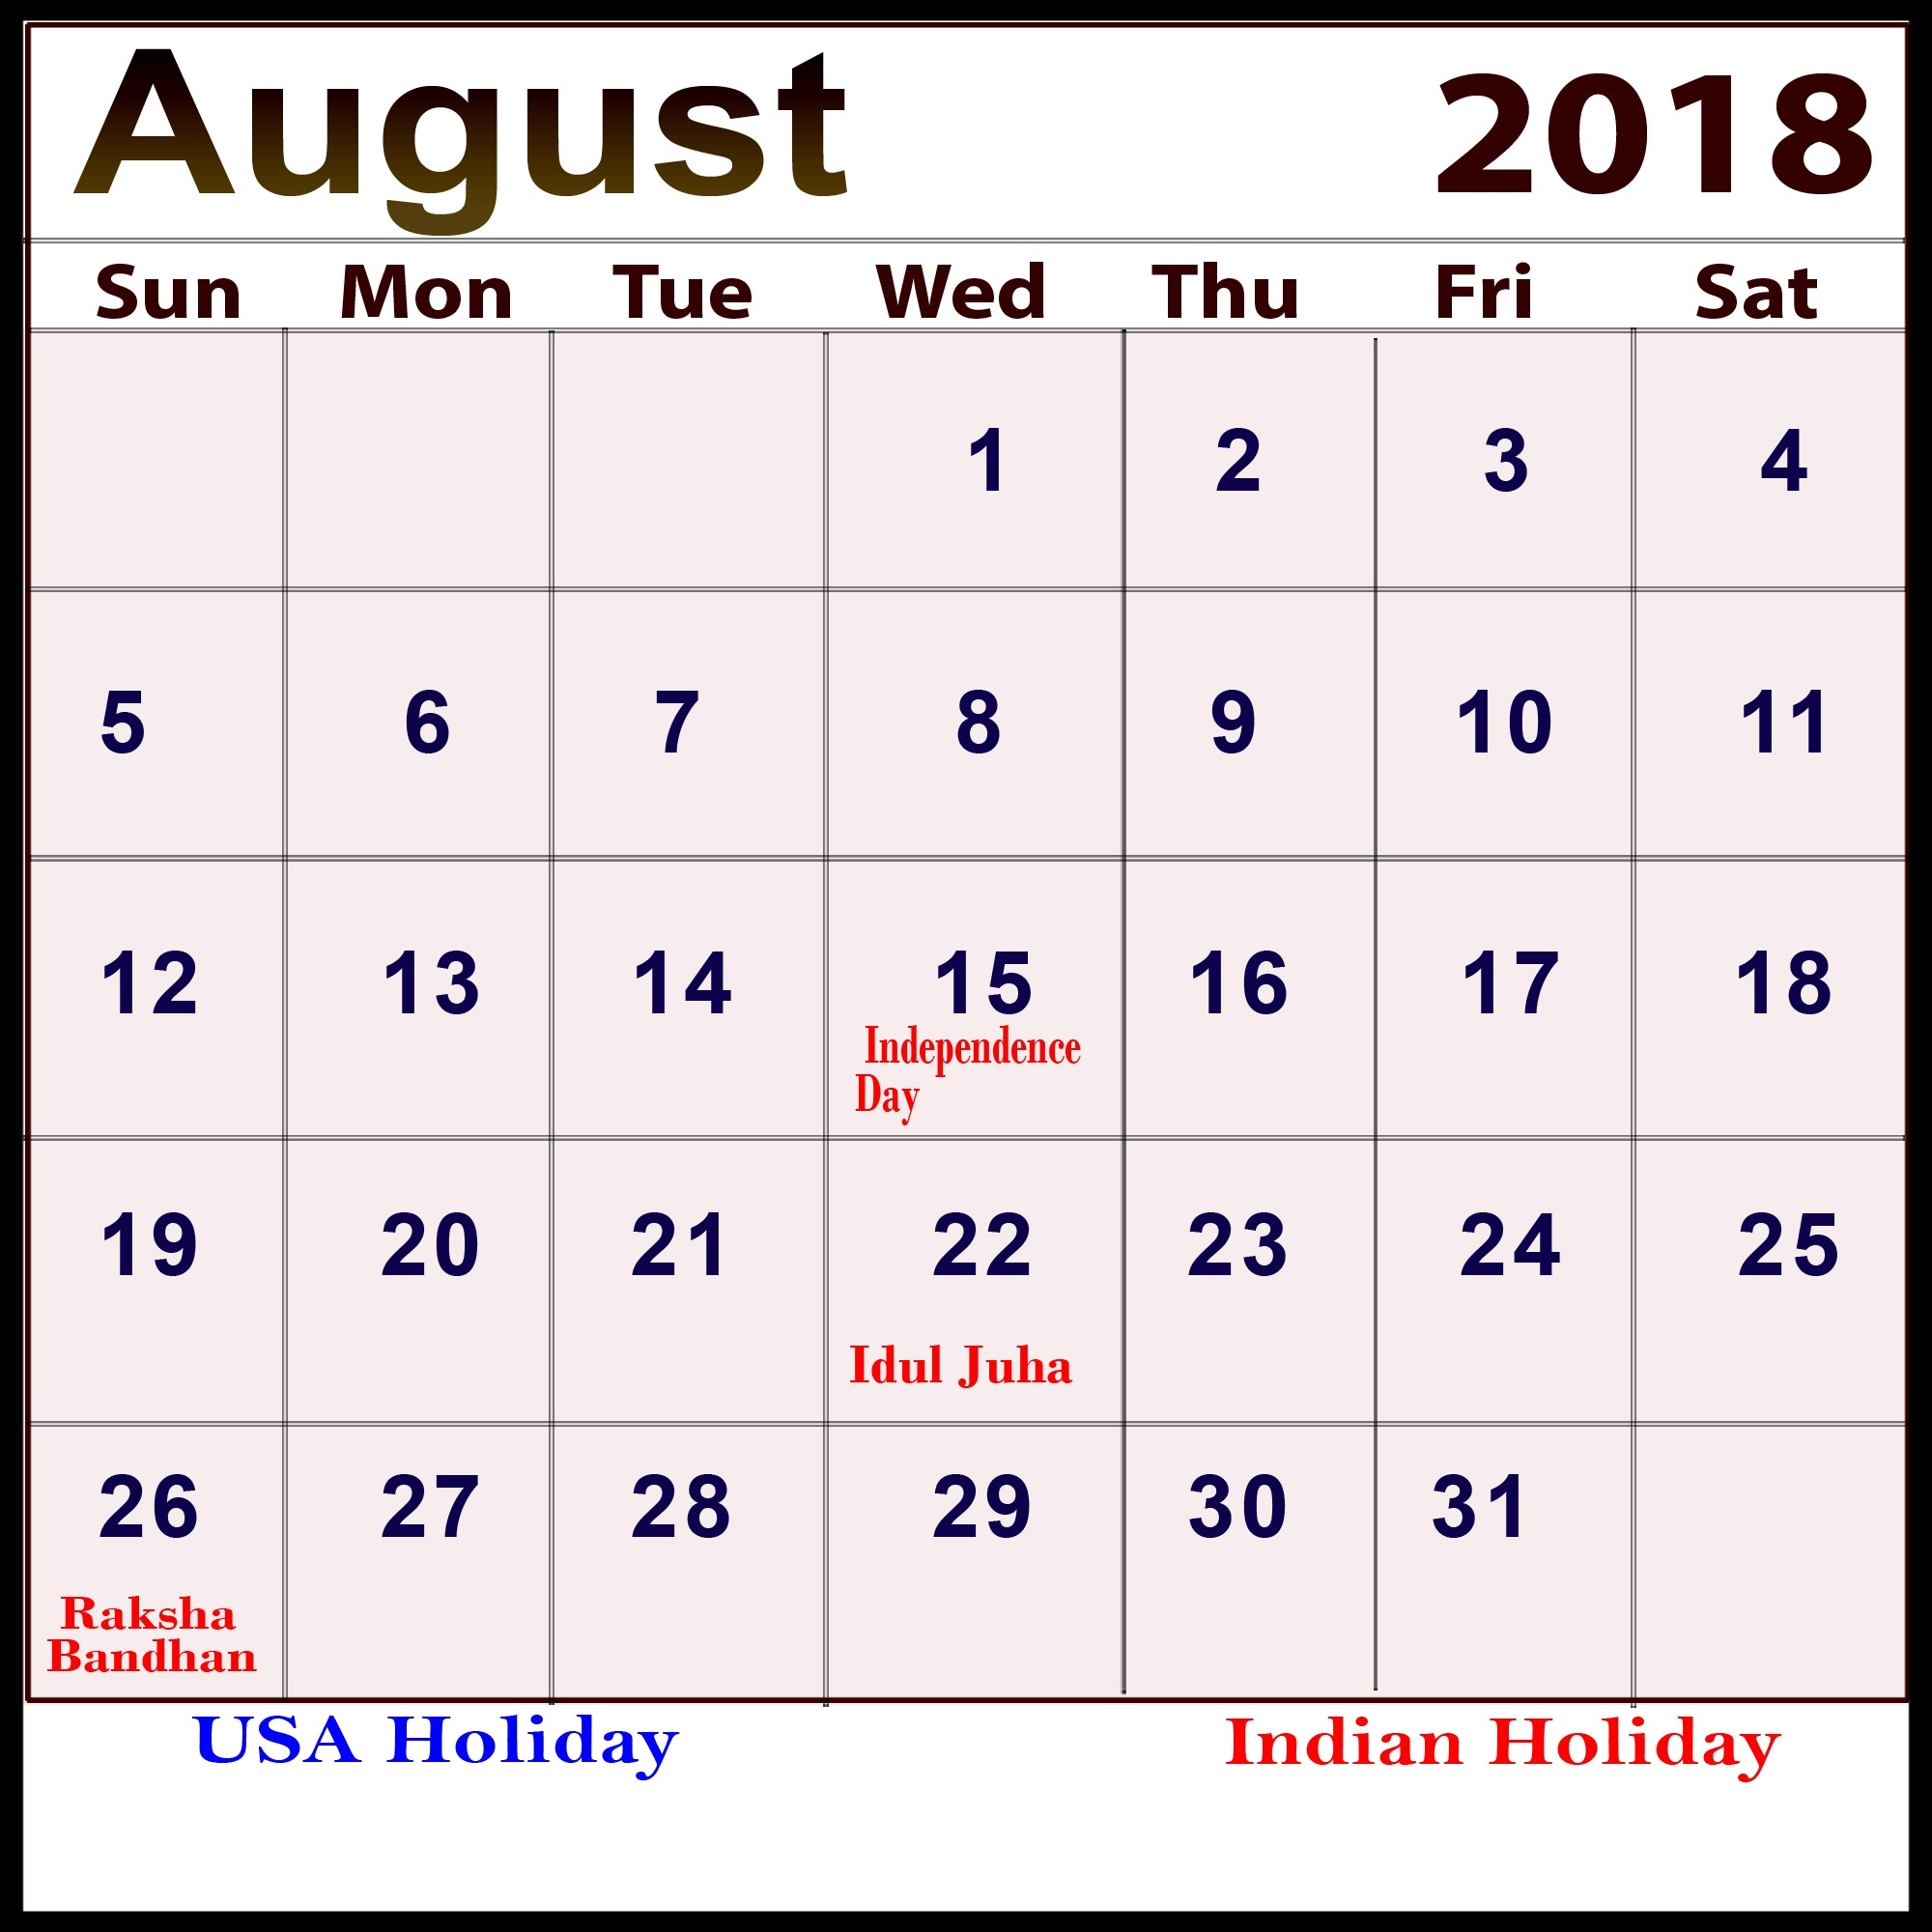 August 2018 Calendar With Holidays For Free